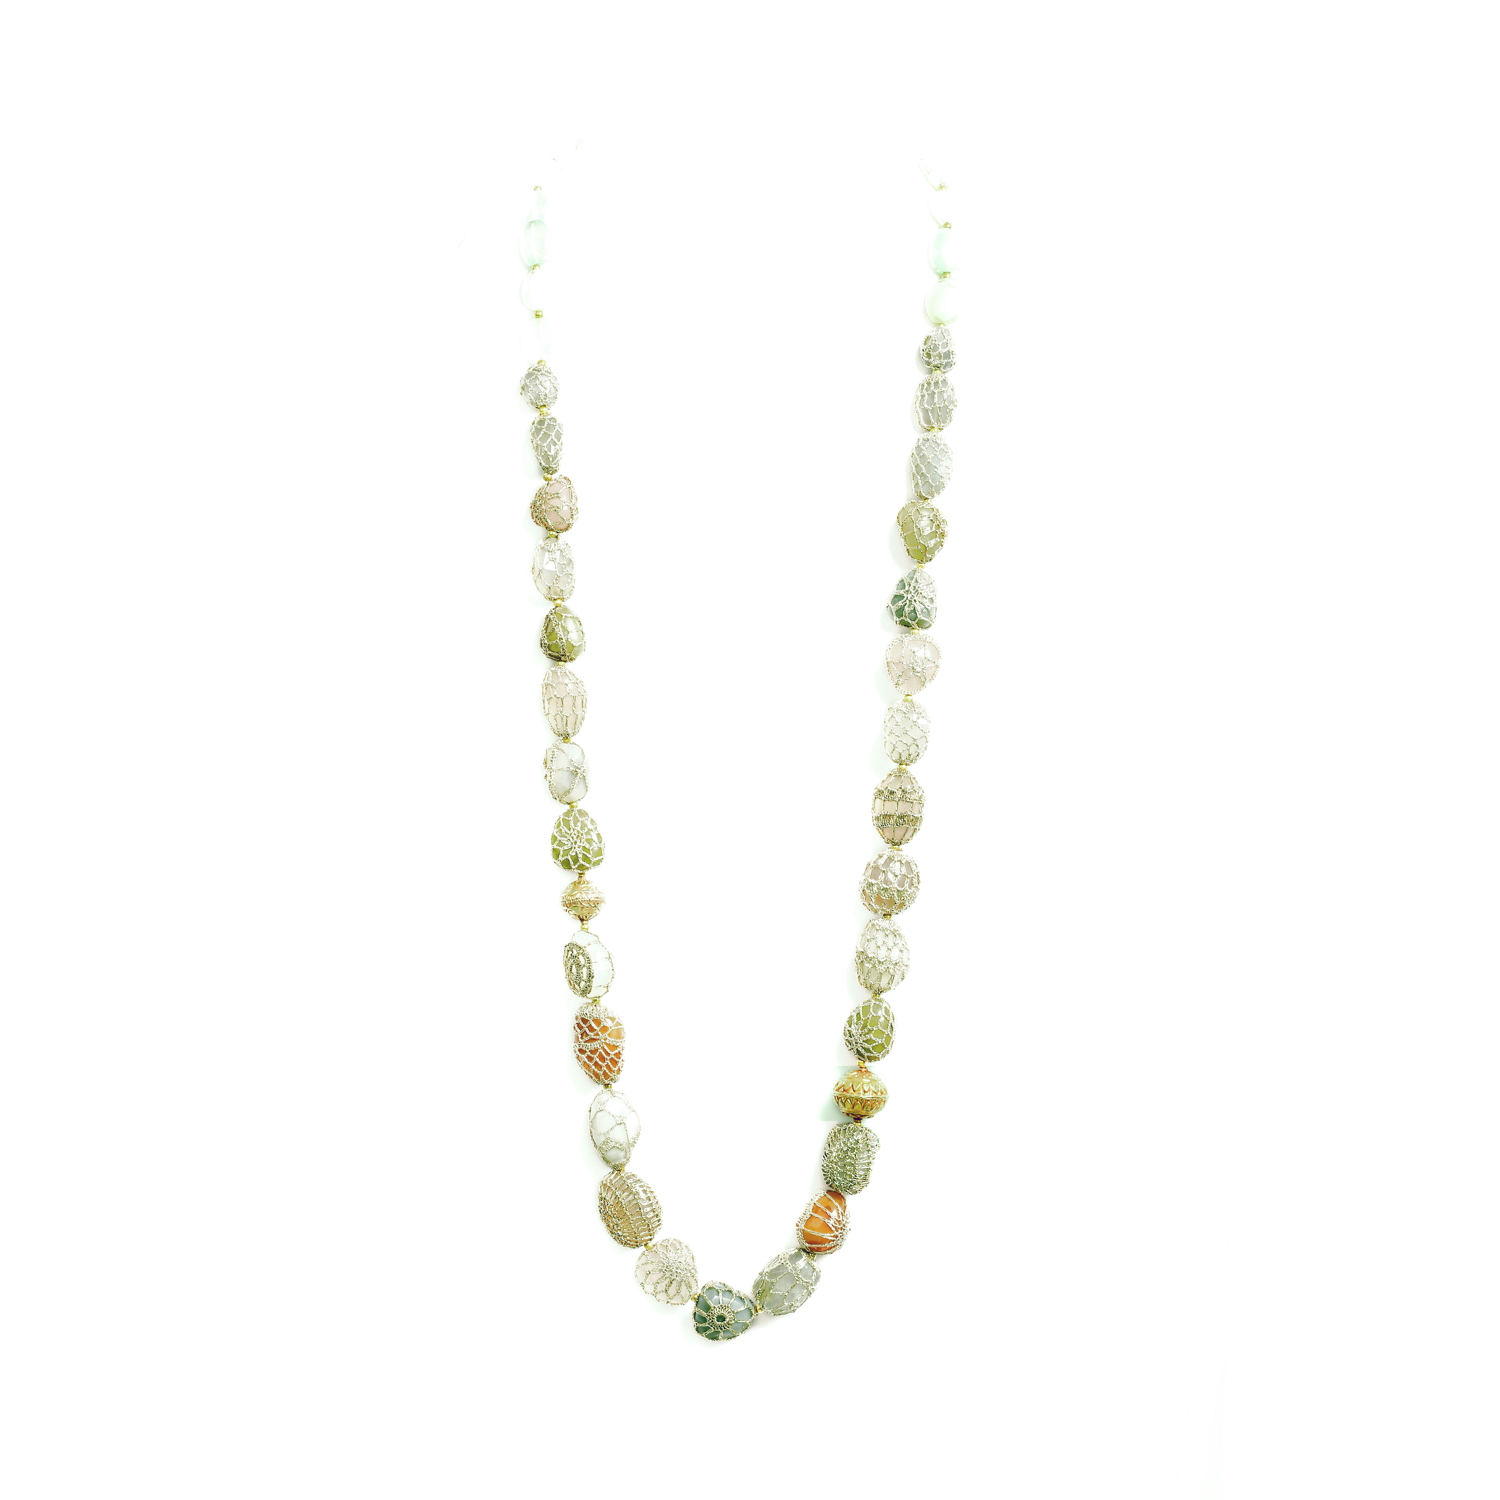 Nomad String of Precious Stones Long Quartz Necklace - Beige